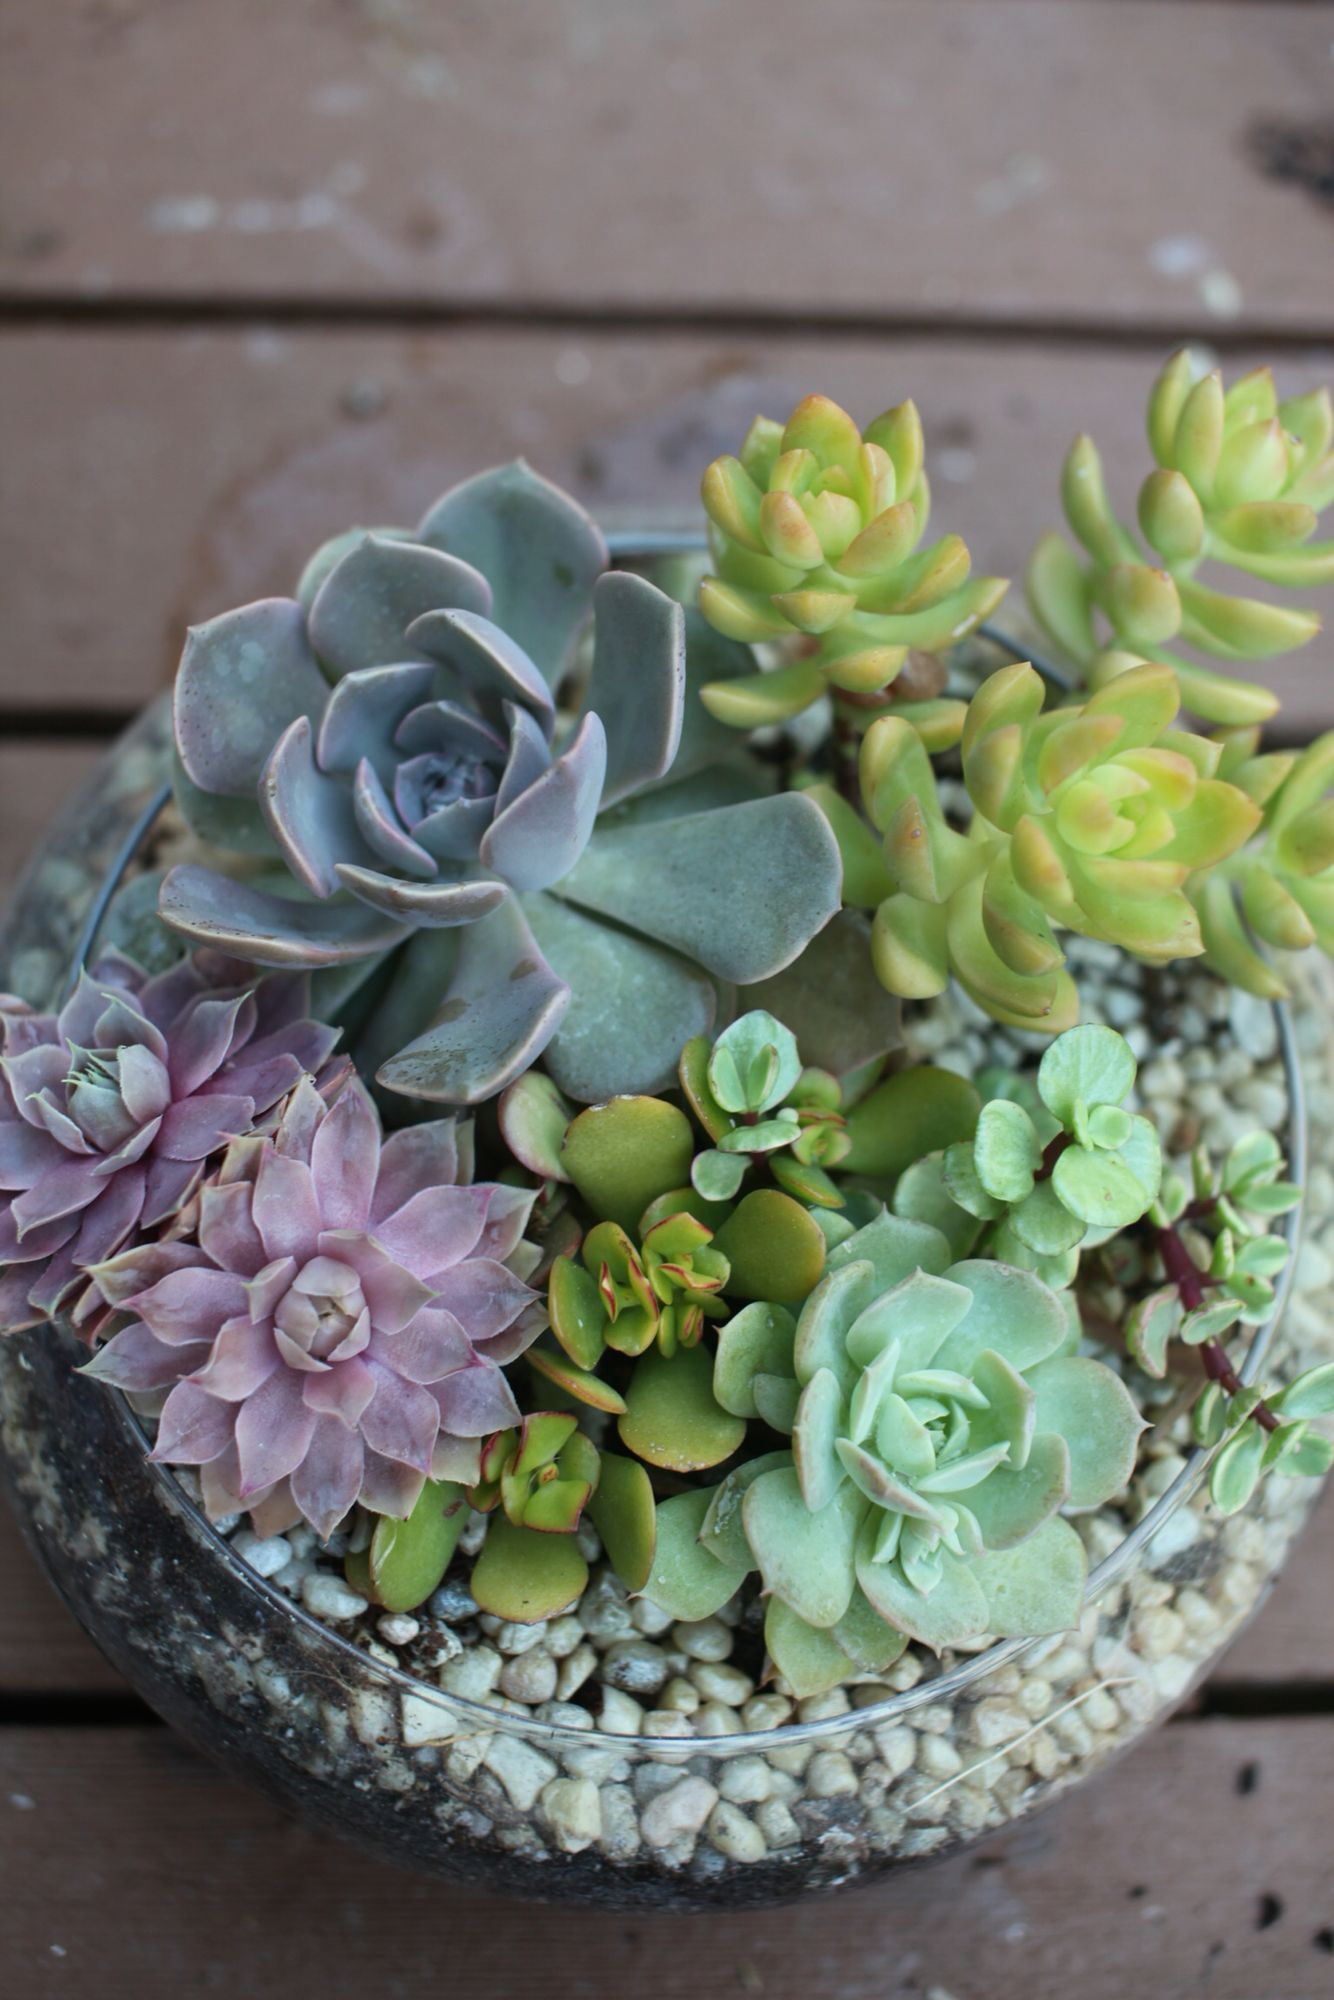 Succulents in a shallow glass bowl succulent pots